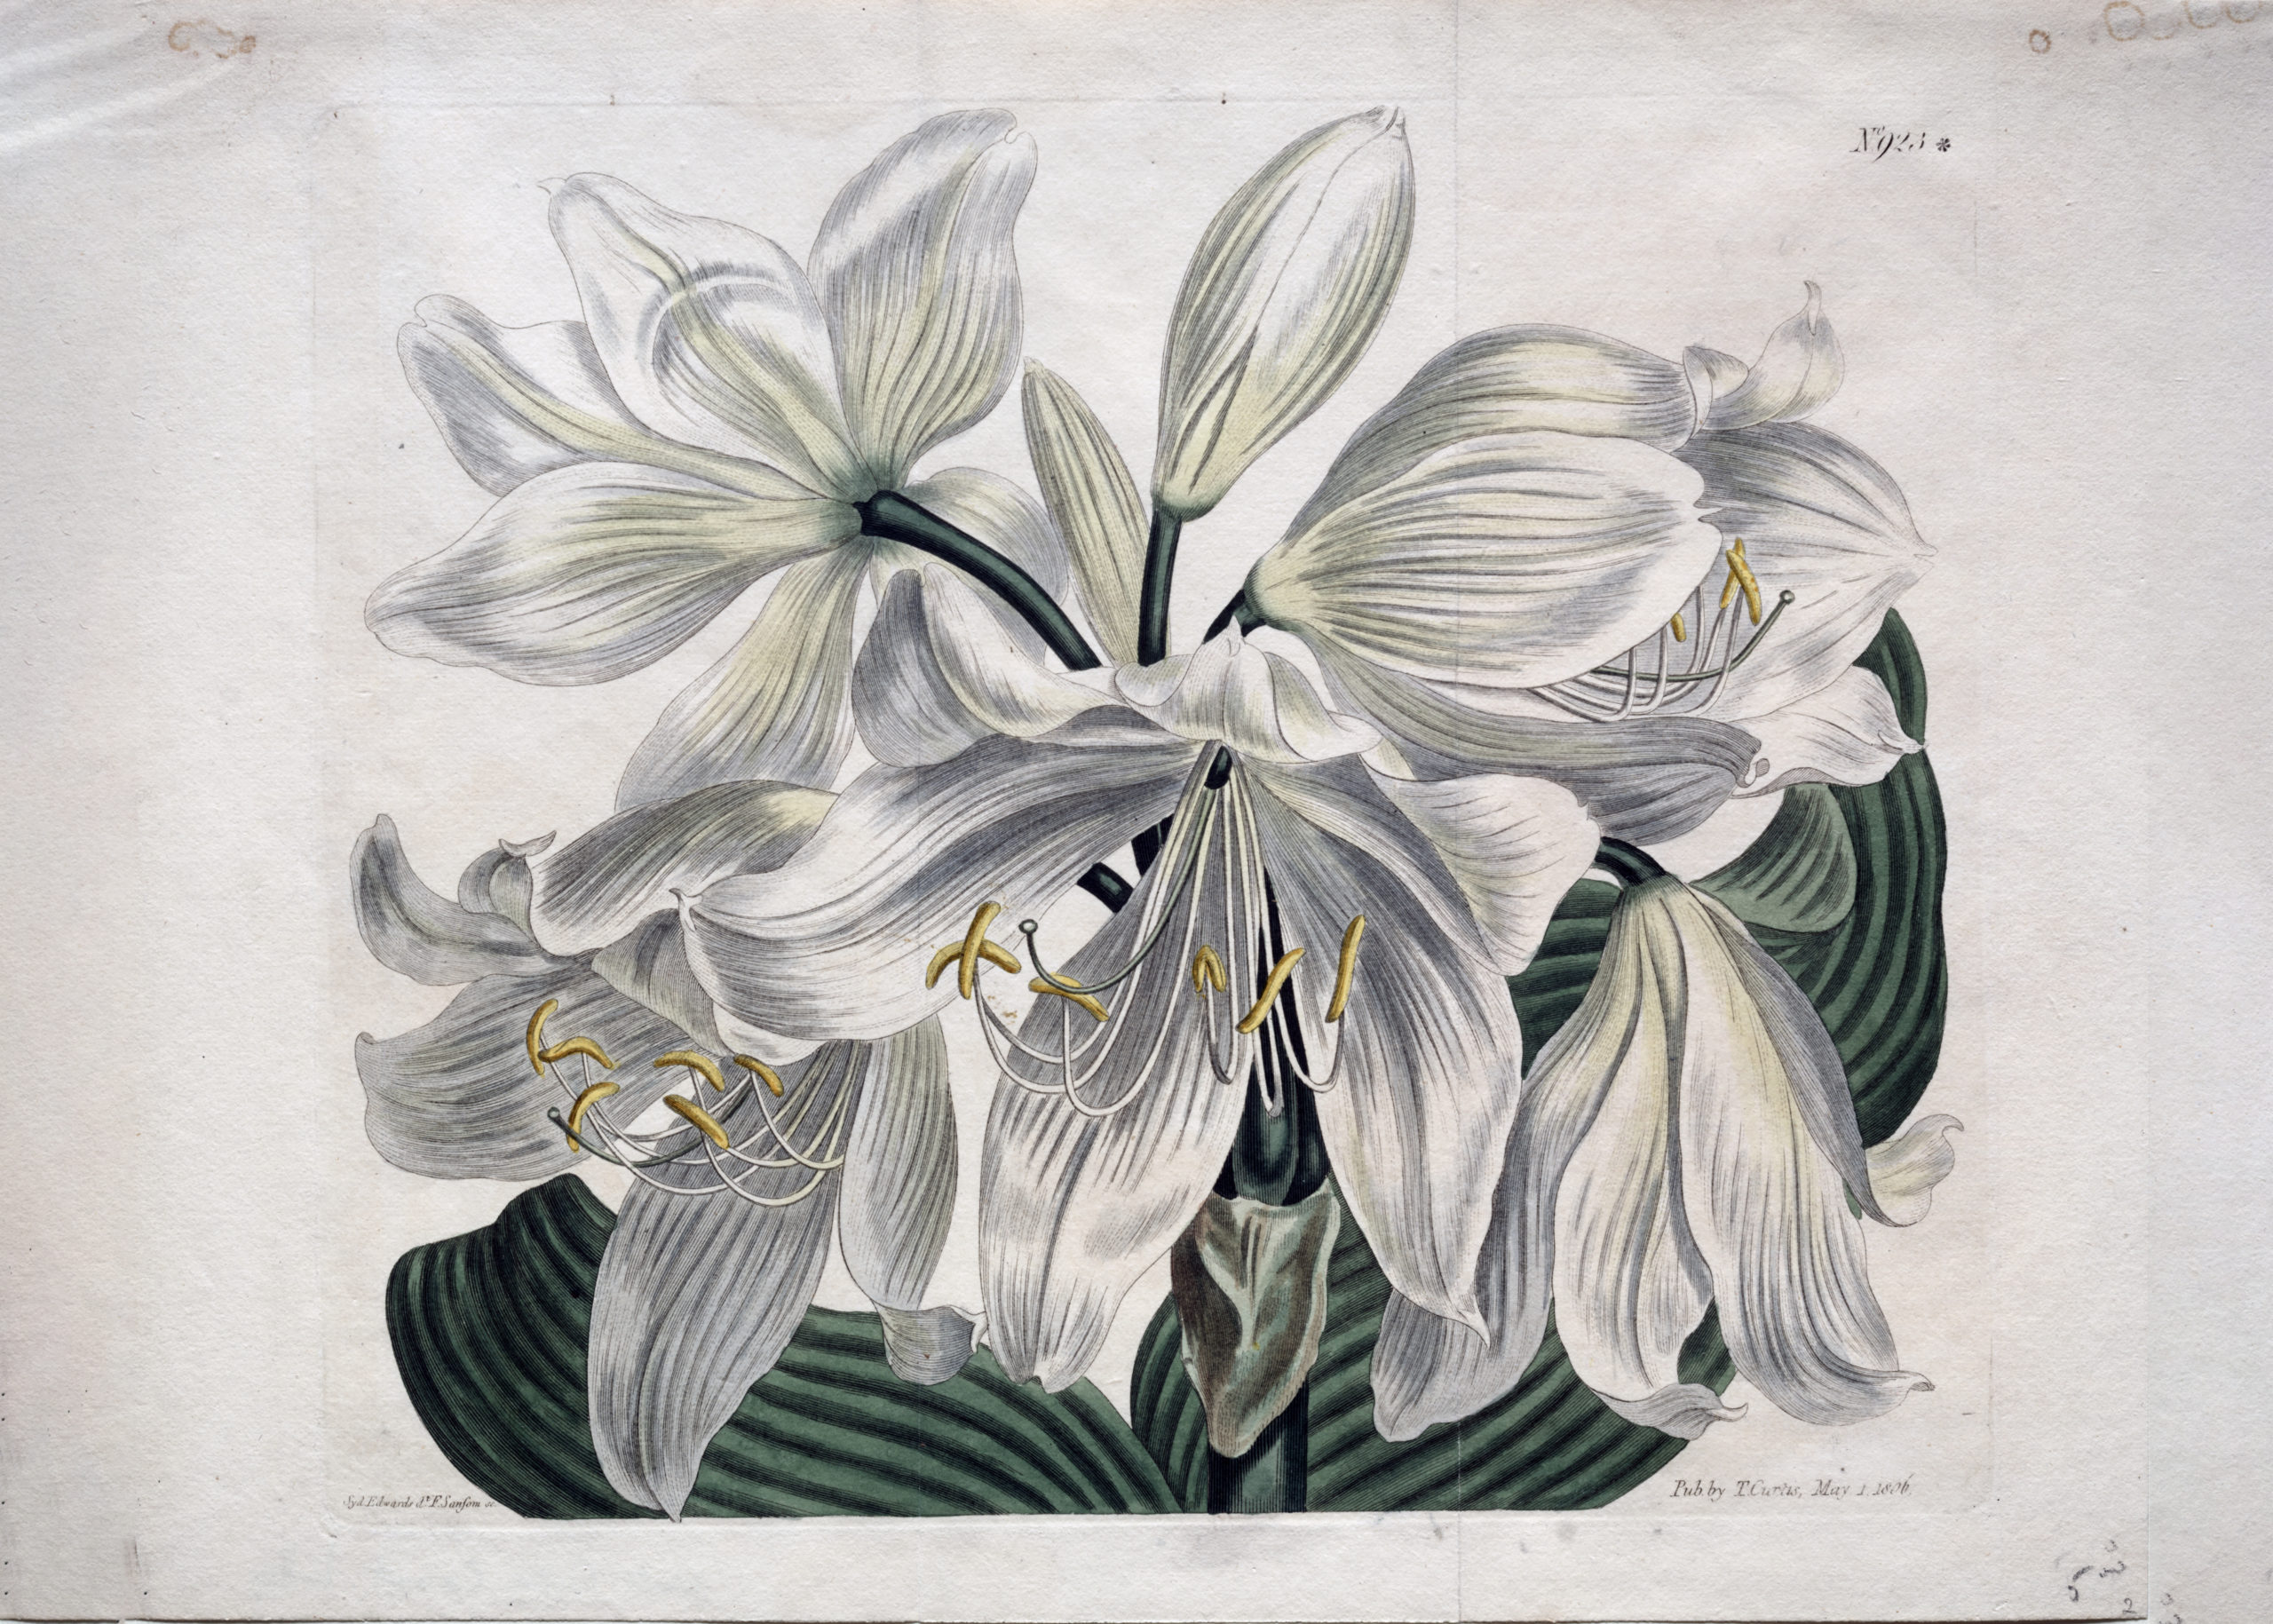 Vintage Botanical Prints - 8 in a series -  White Cape-Cost Lily from the Cleveland Museum of Art